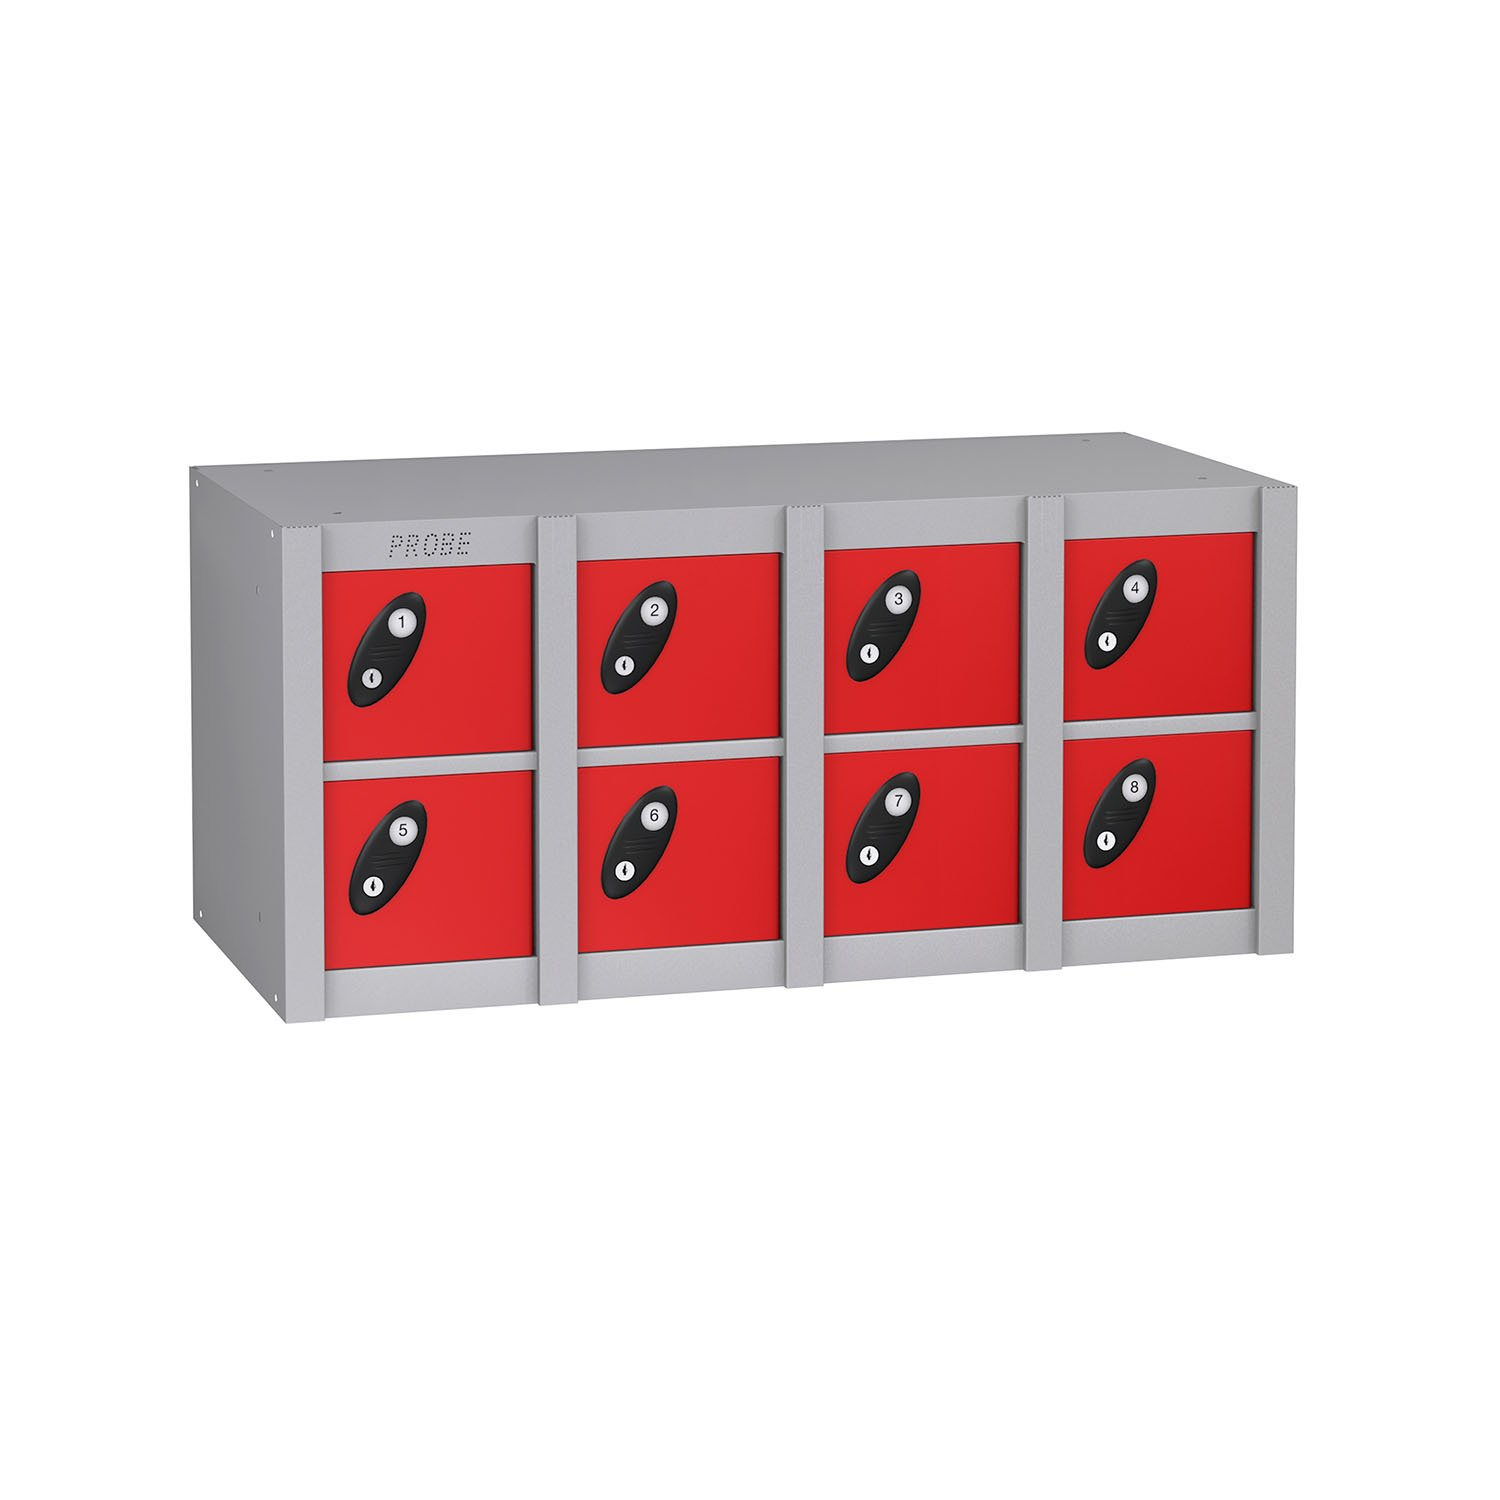 Probe 8 doors minibox lockers in red colour